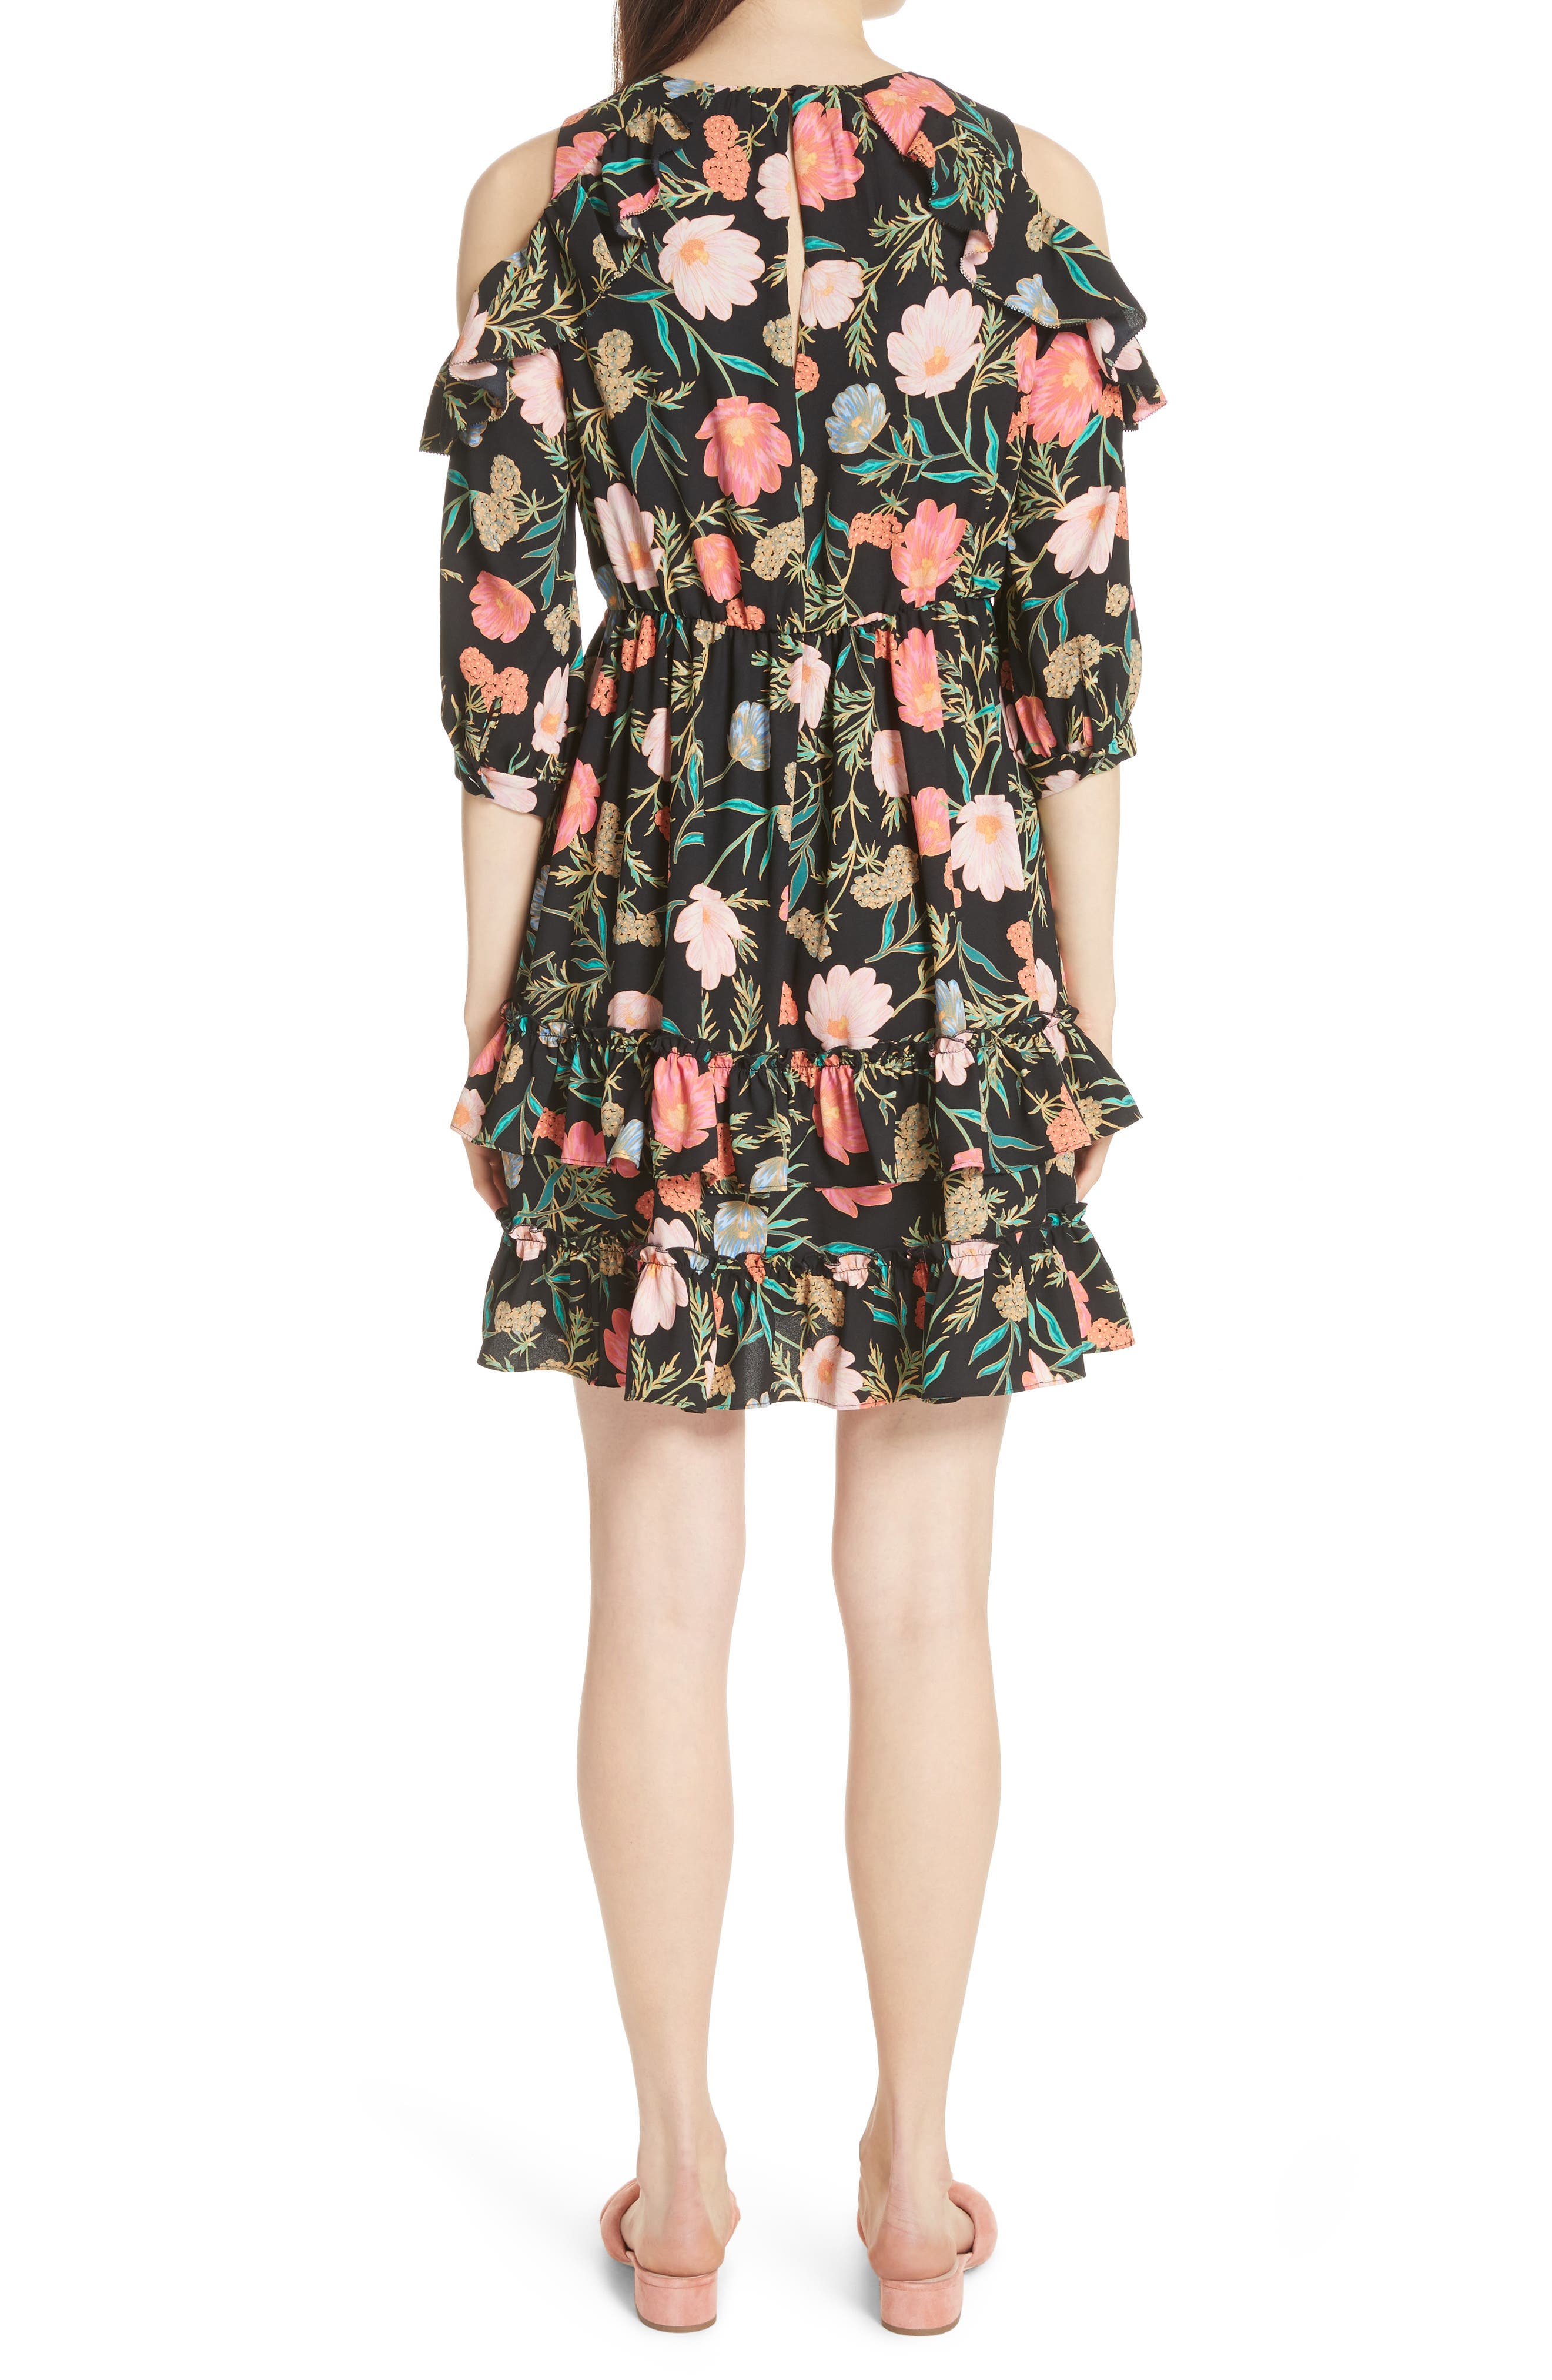 blossom cold shoulder dress,                             Alternate thumbnail 2, color,                             001